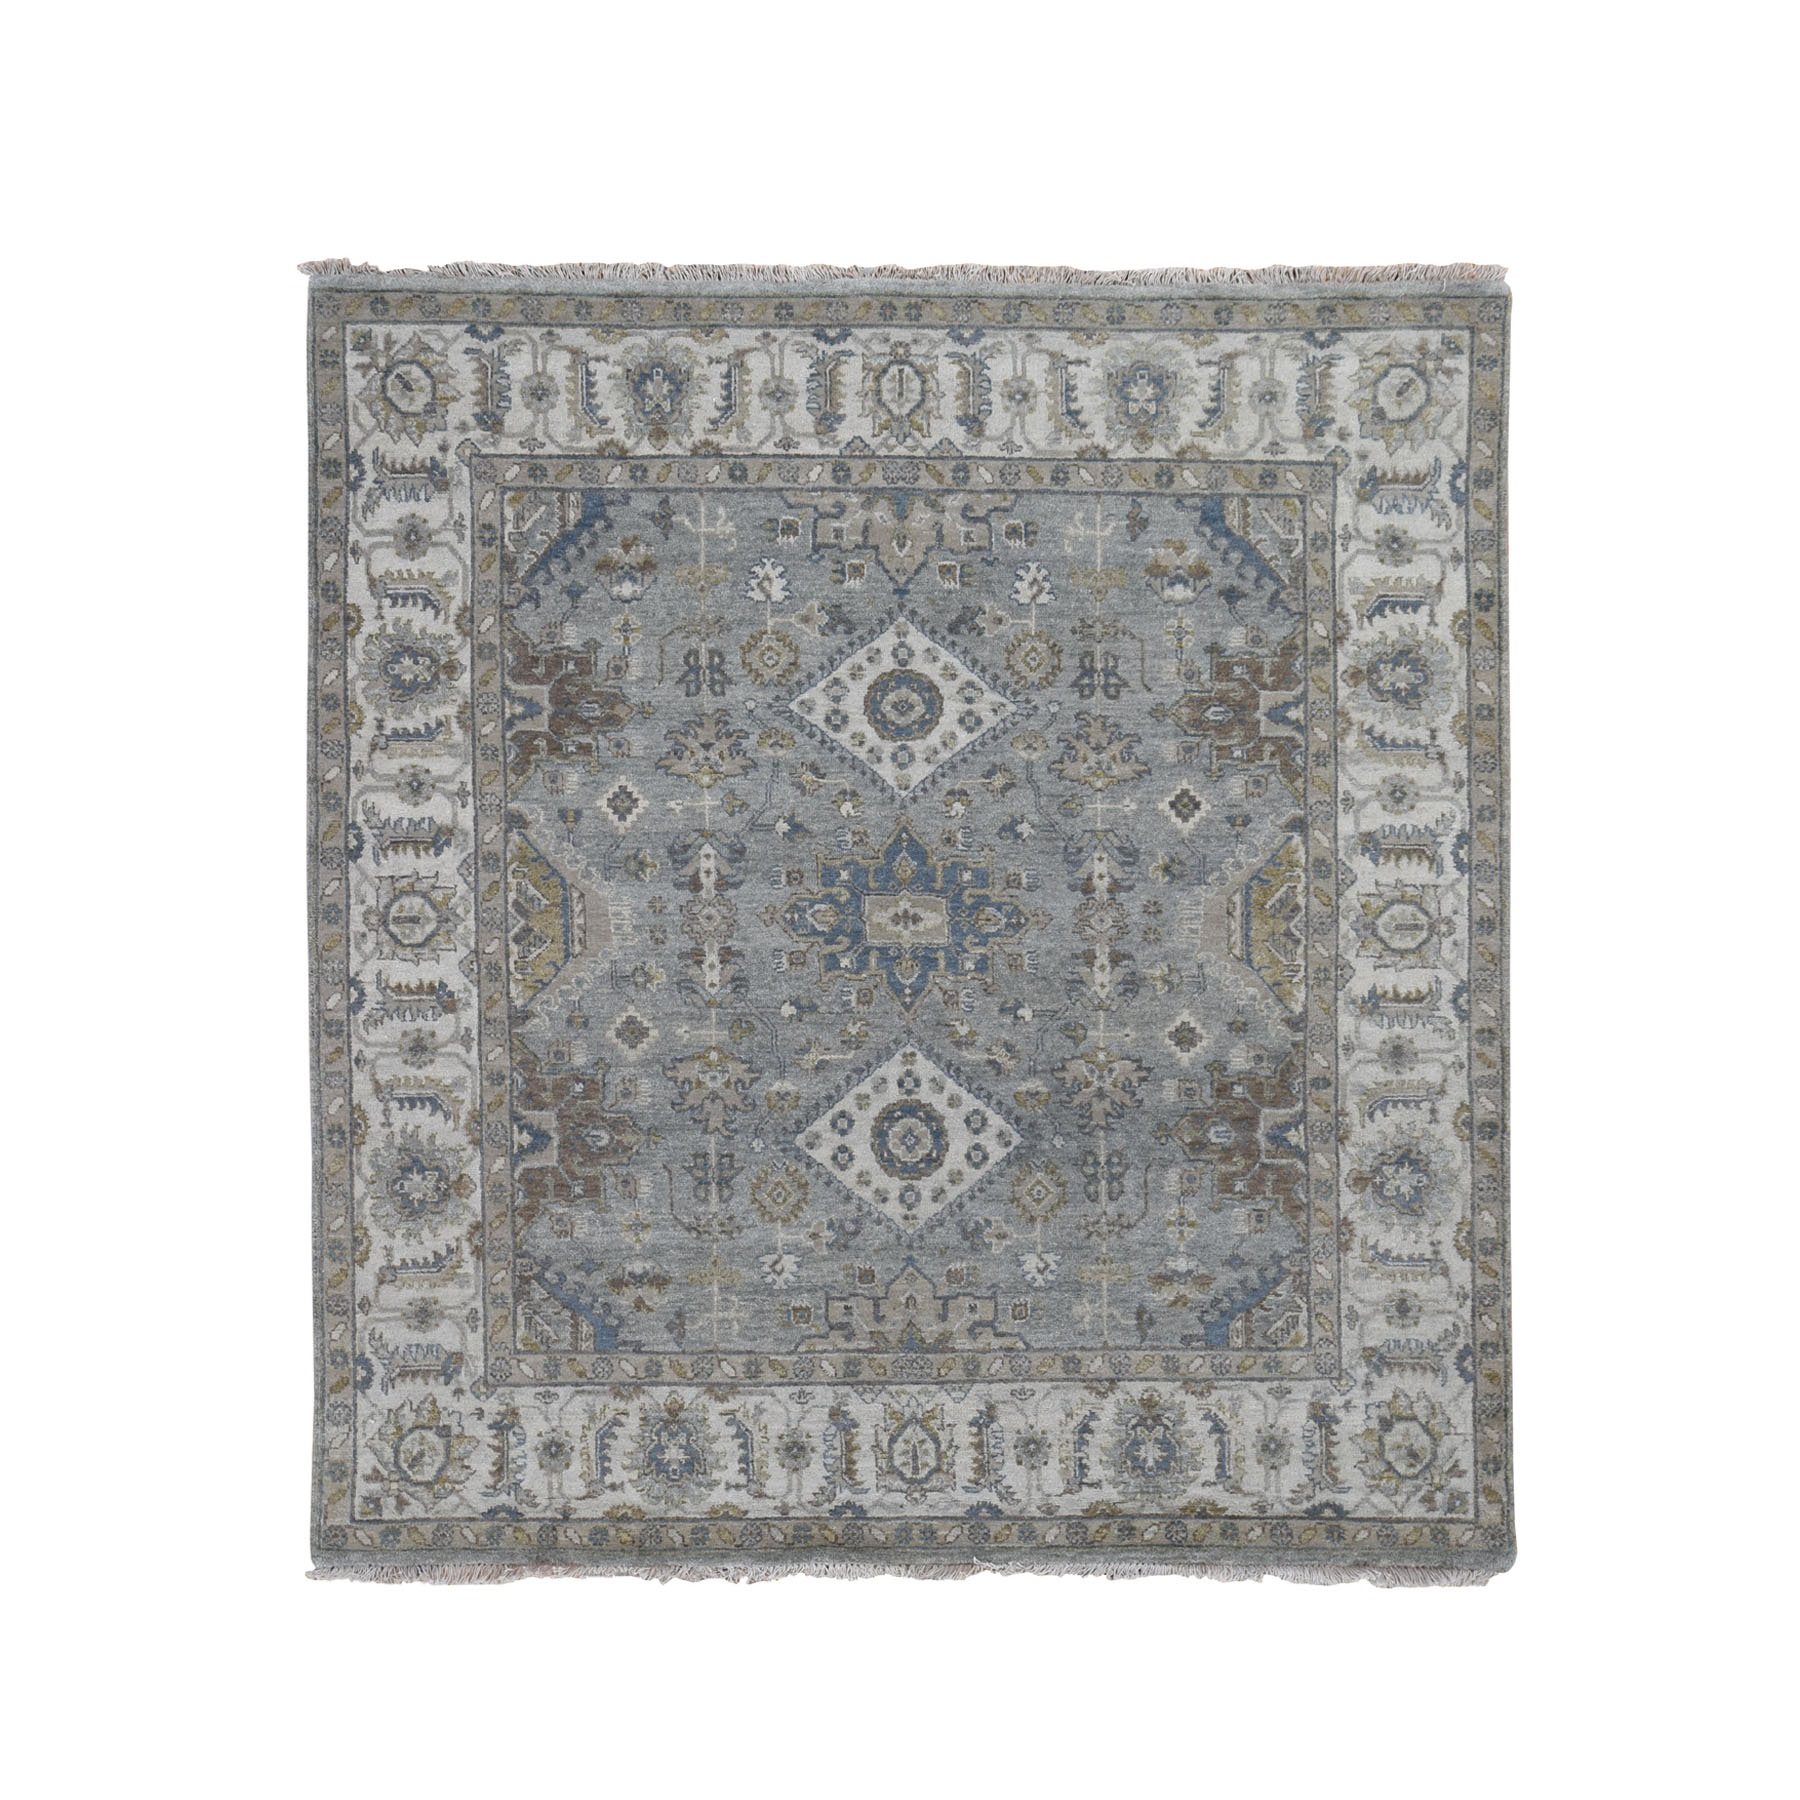 "6'2""x6'2"" Square Gray Karajeh Design Pure Wool Hand Woven Oriental Rug"